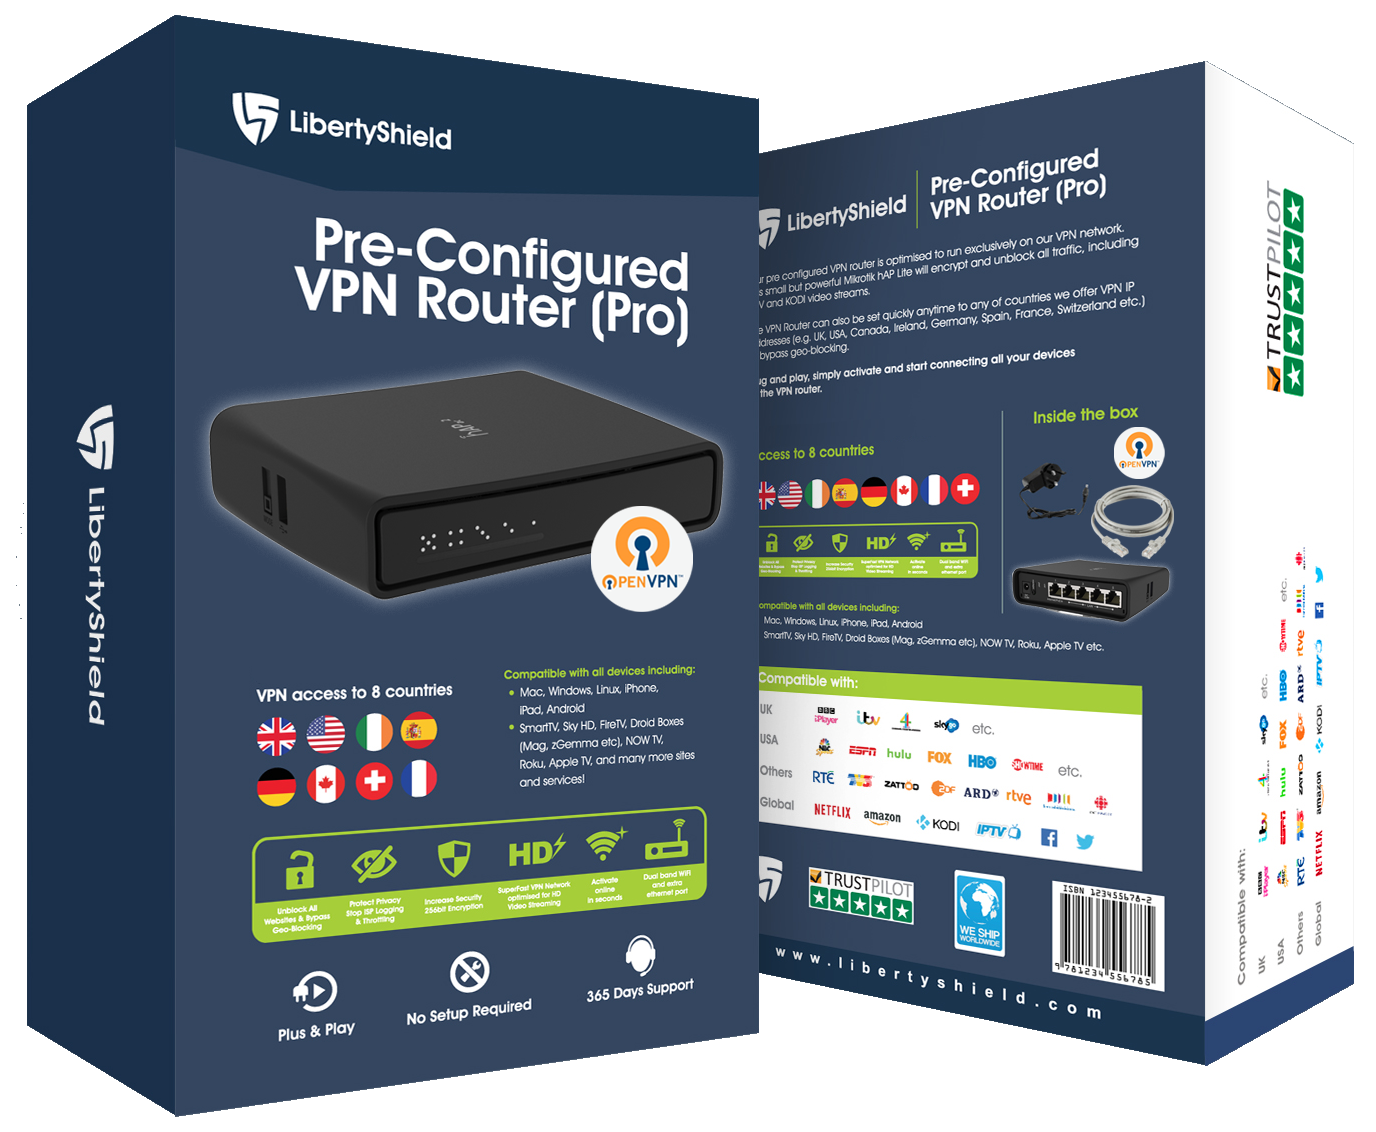 What's the difference between the PRO and LITE VPN Routers